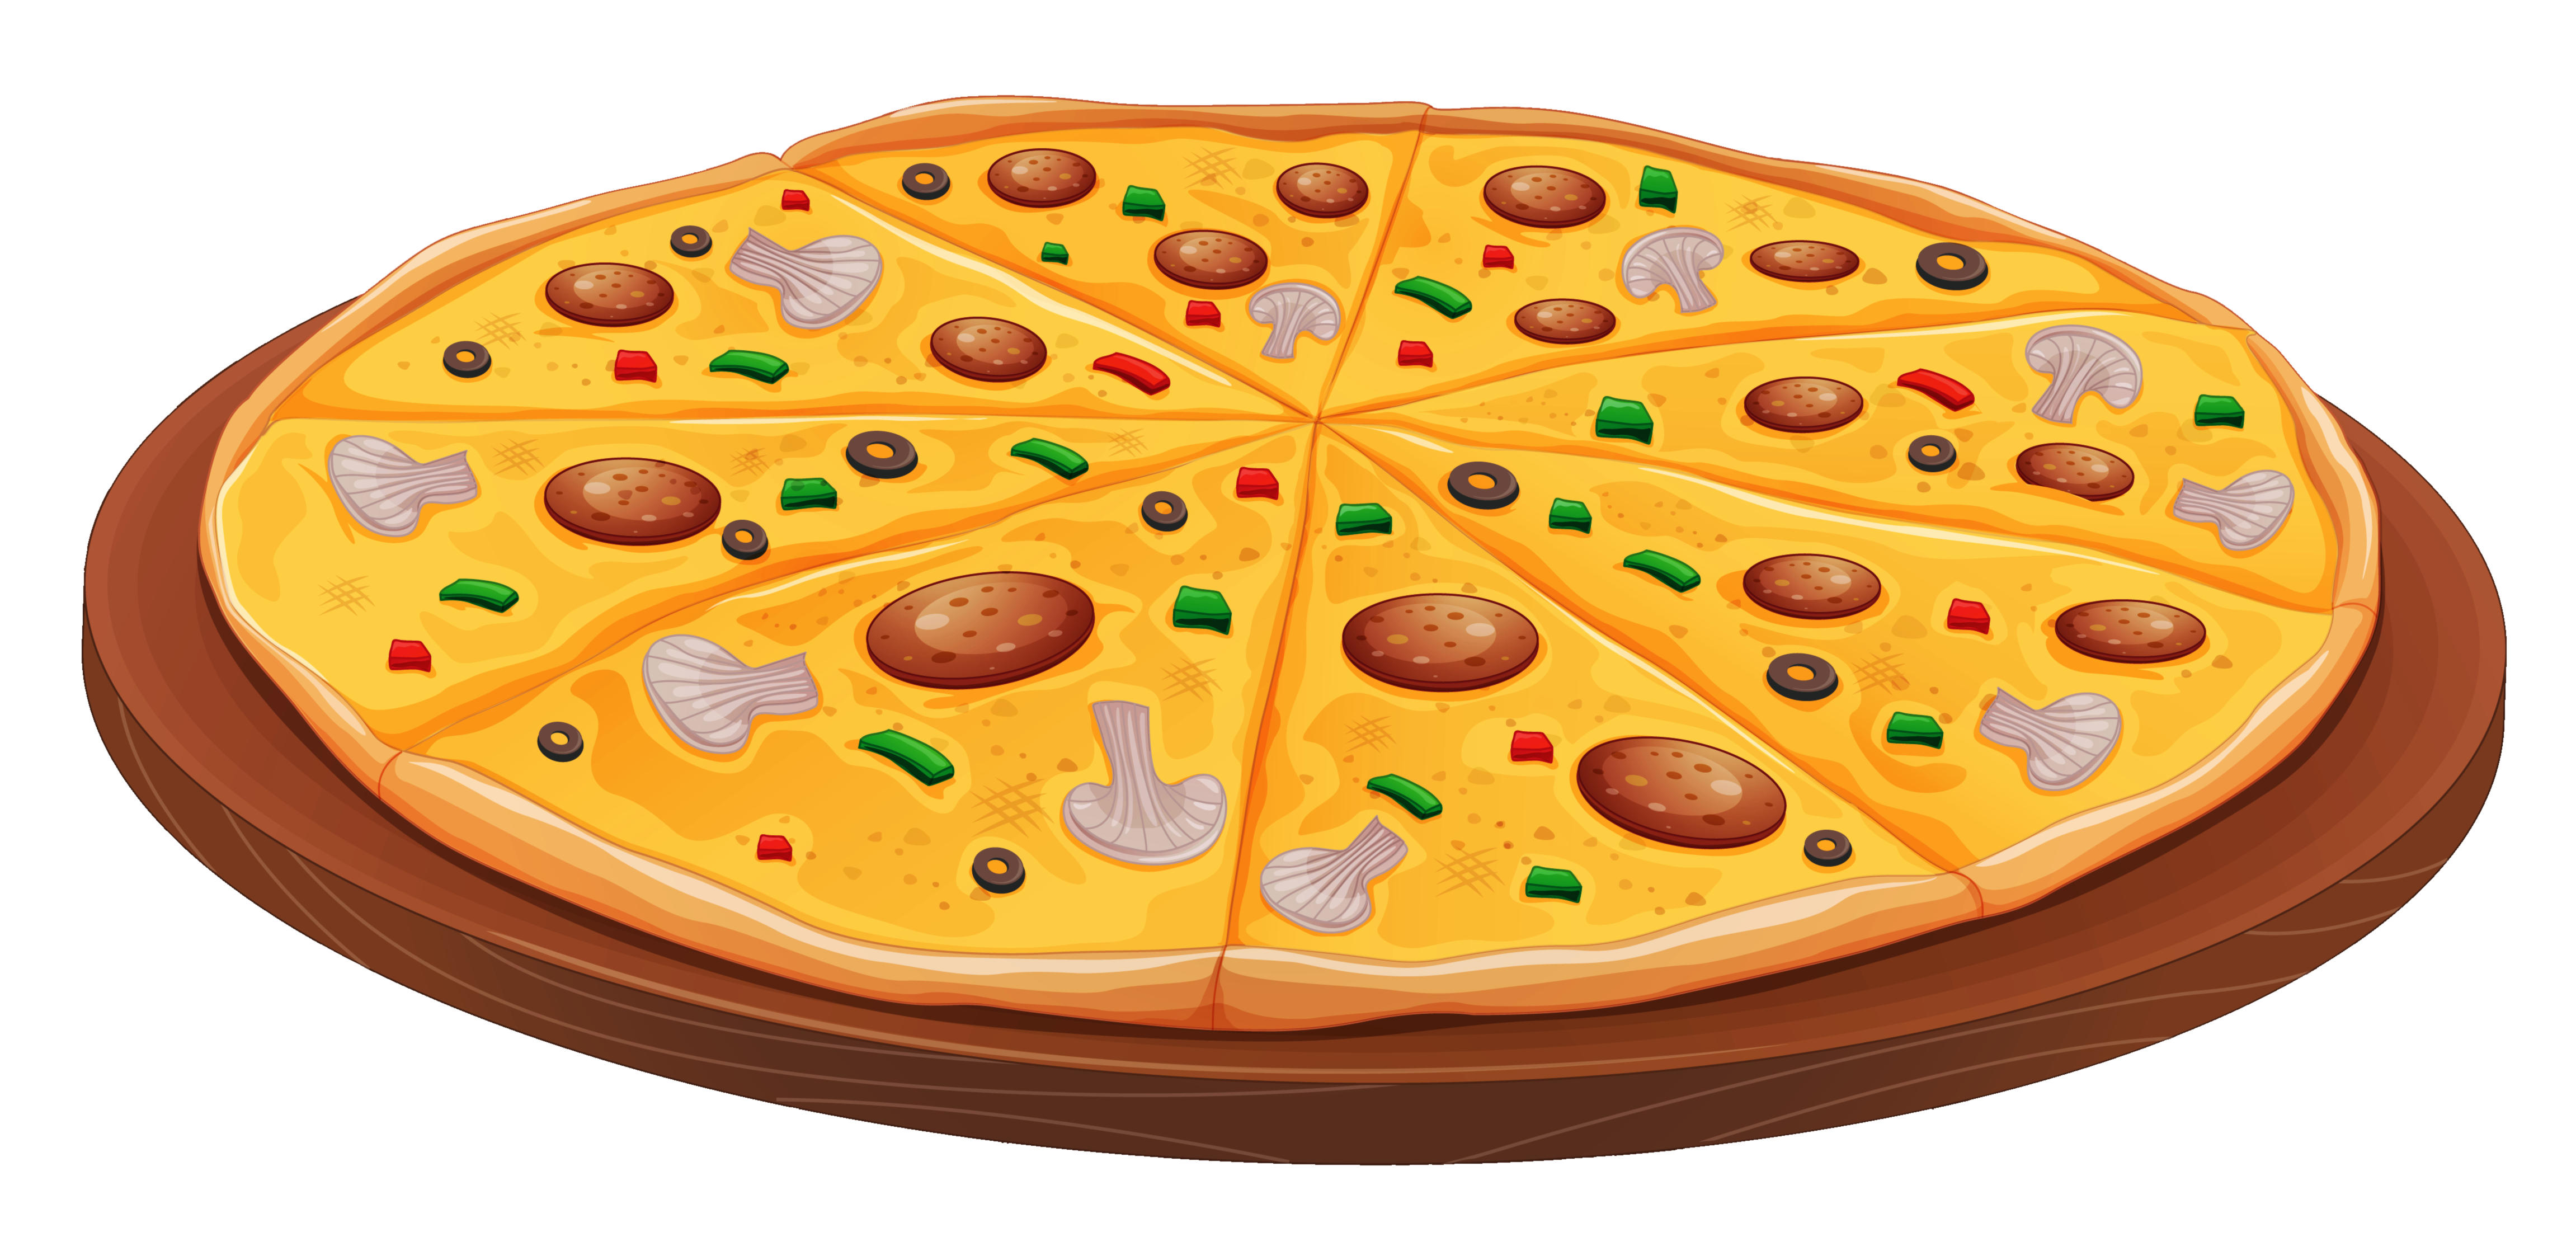 Pizza Free To Use Clip Art Transparent Png.